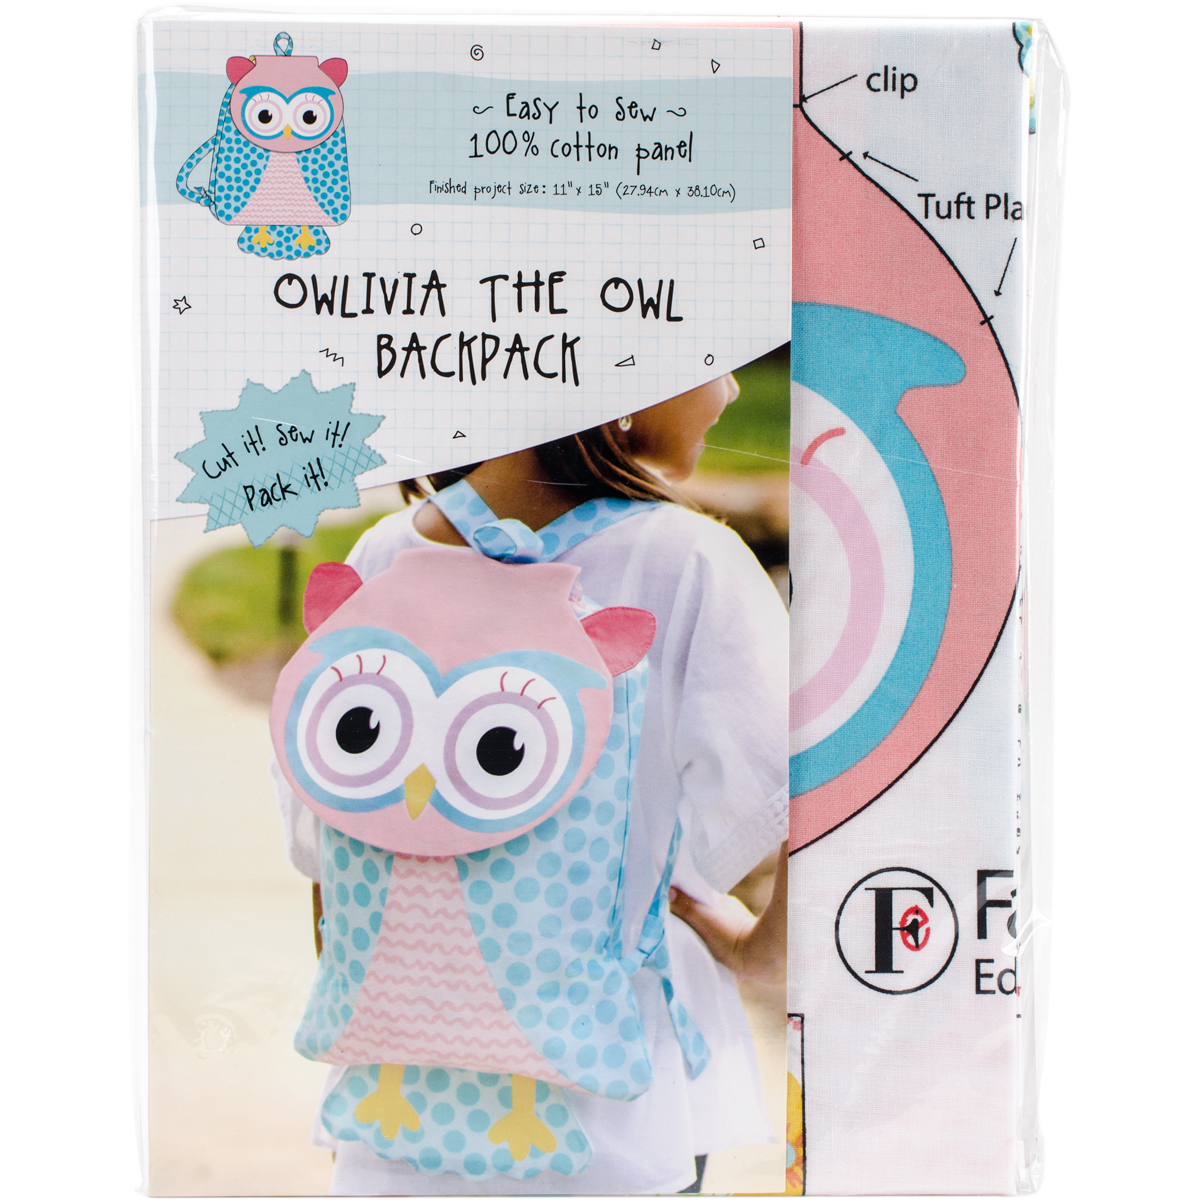 Owlivia The Owl Animal Backpack On Preprinted Fabric-